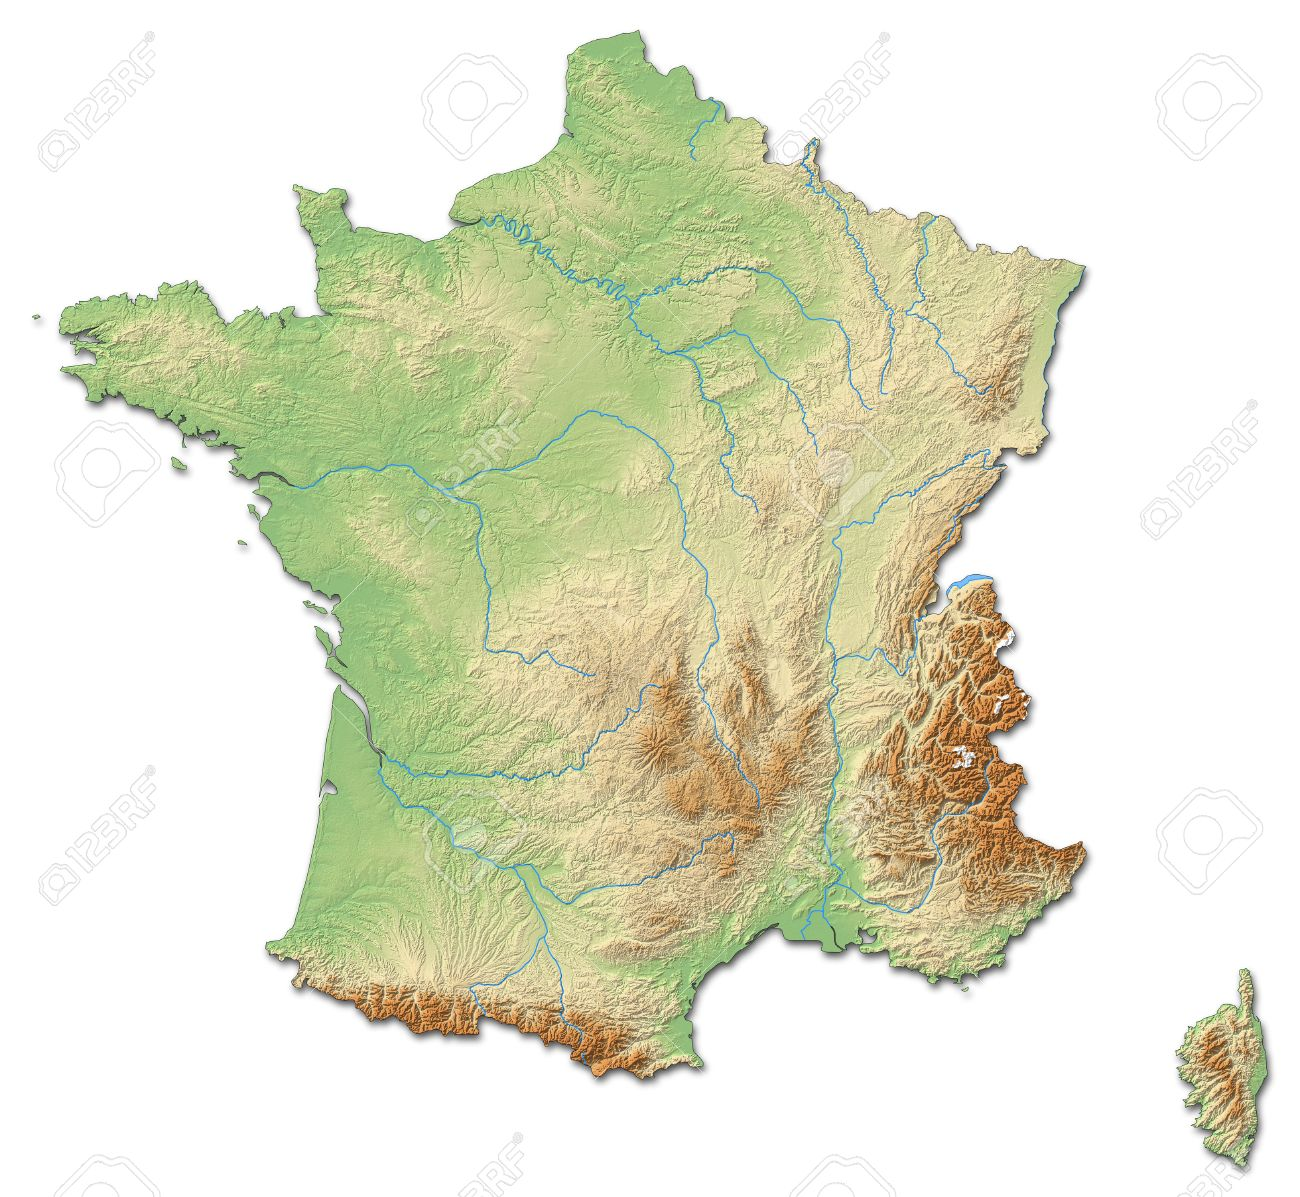 carte de france en relief Relief Map Of France With Shaded Relief. Stock Photo, Picture And